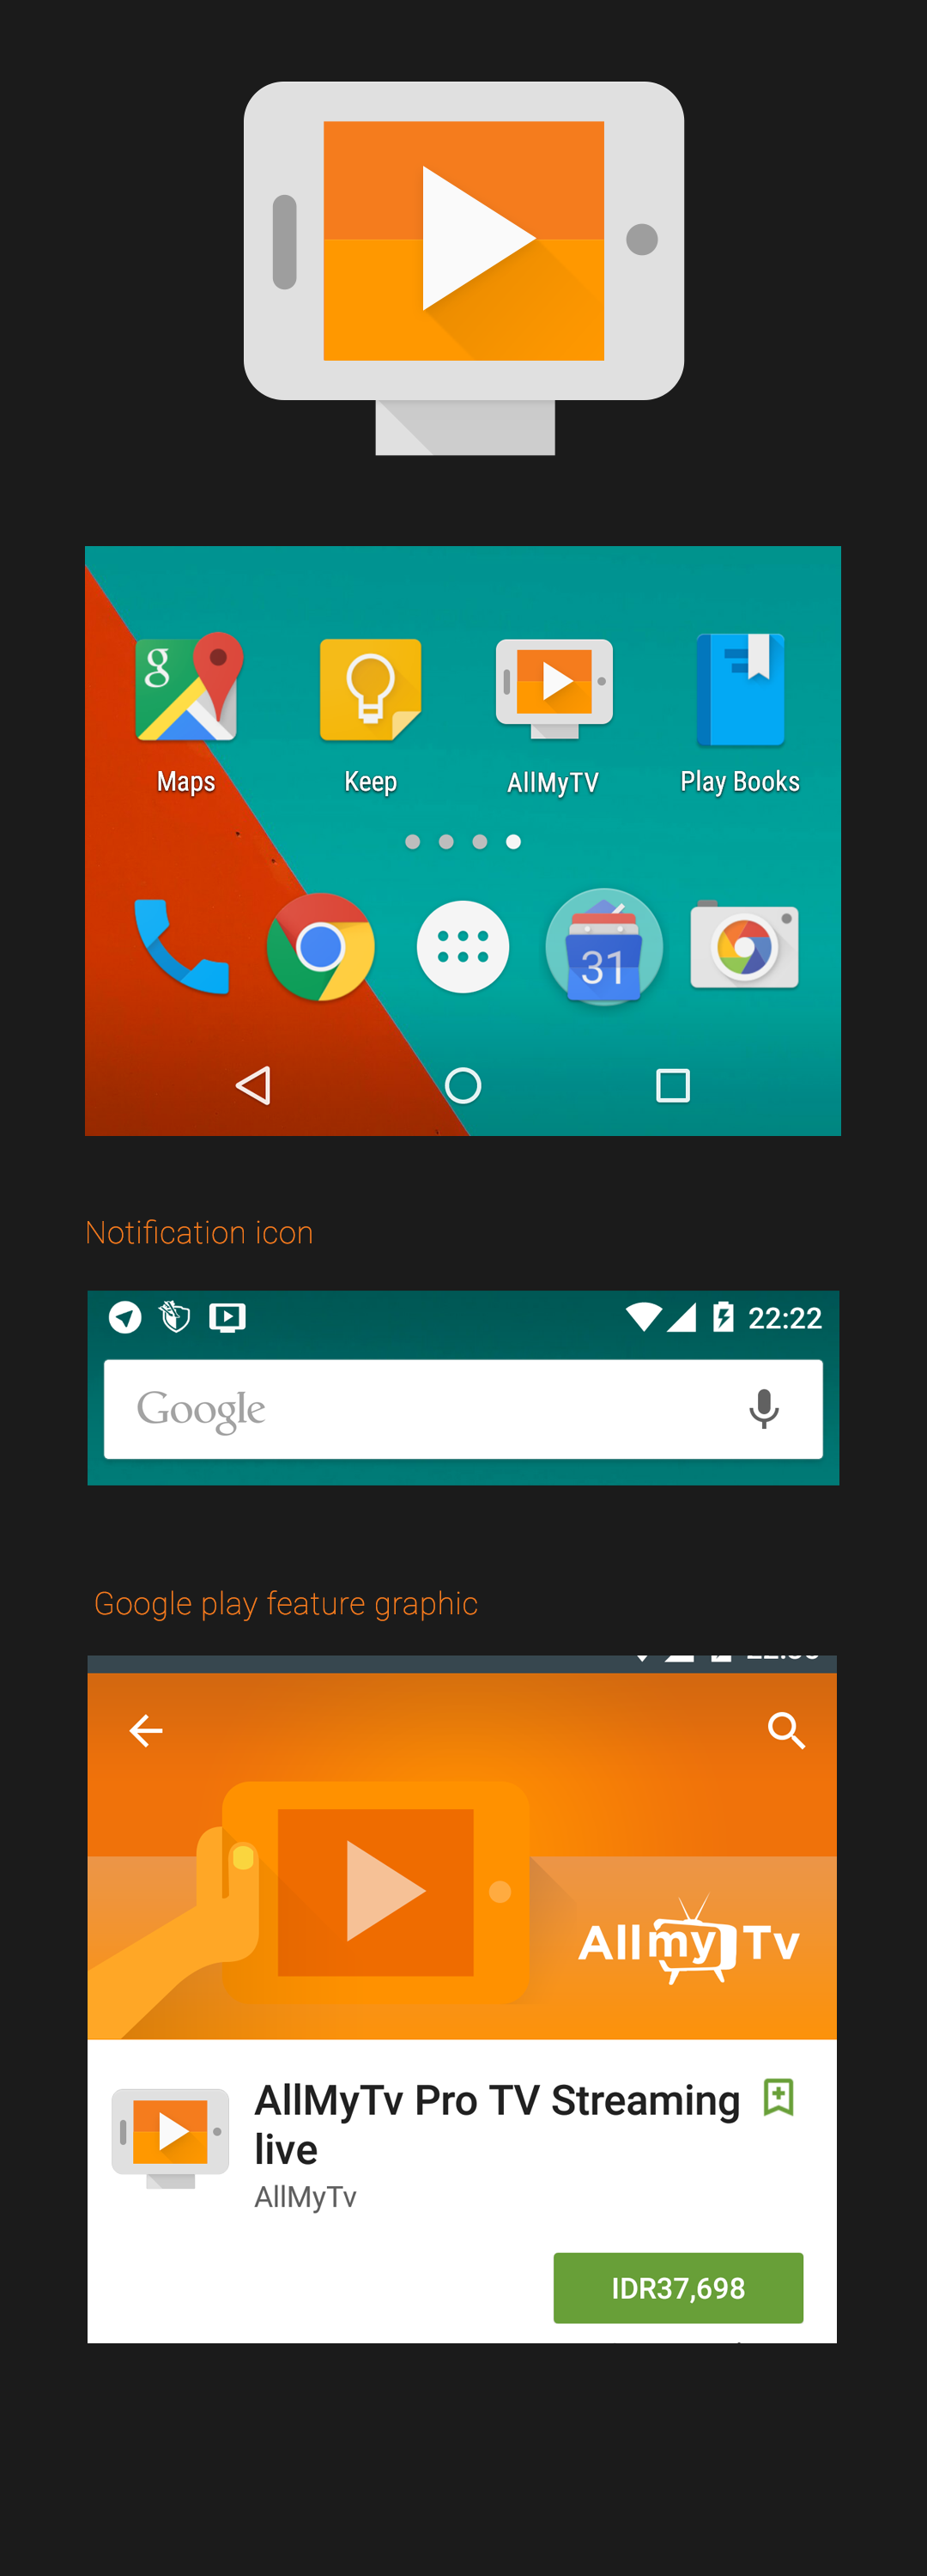 The new AllMyTv icon for material design!